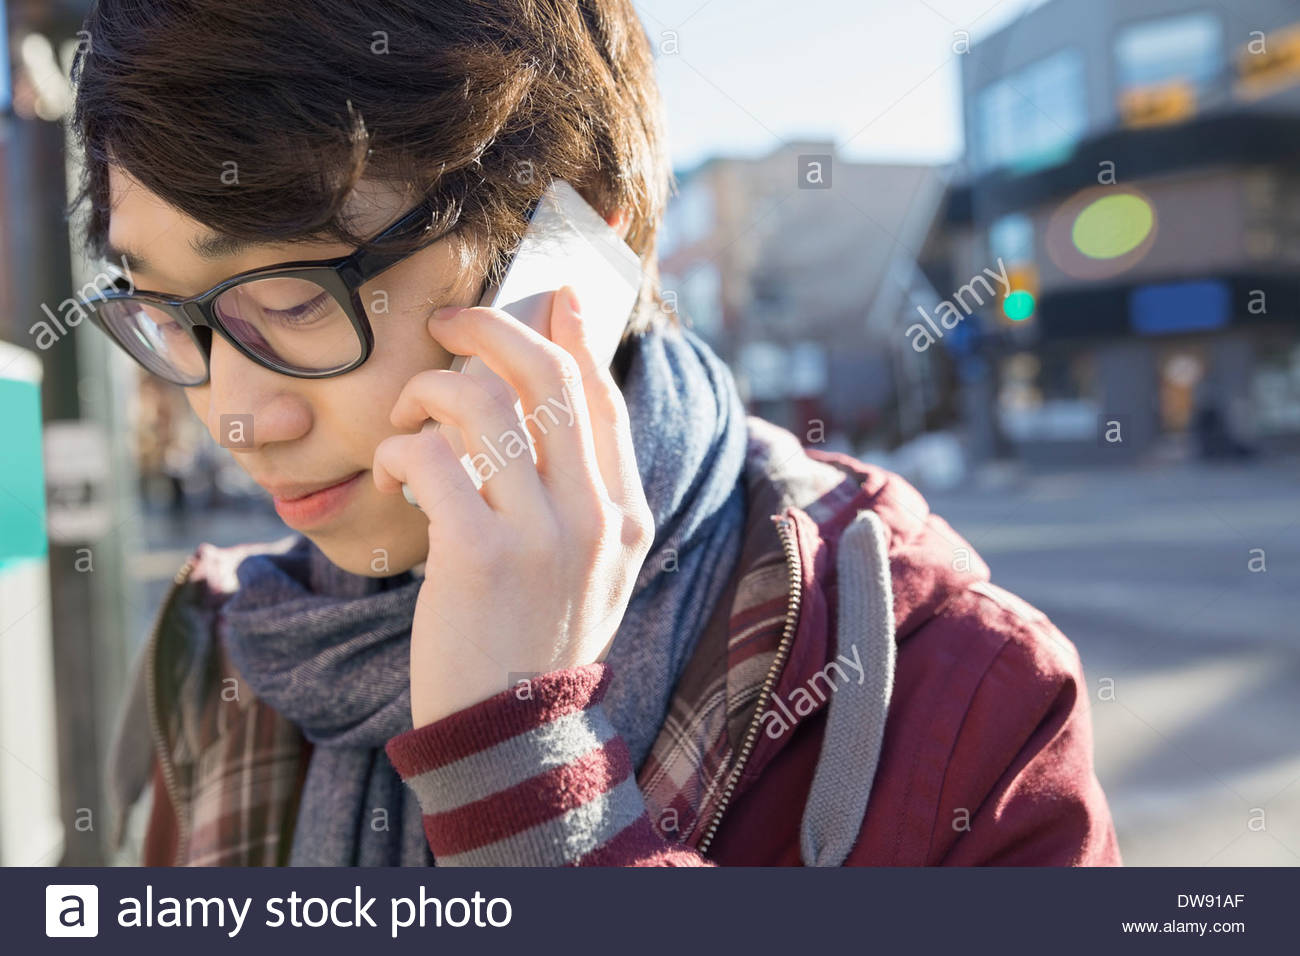 Young man talking on smart phone outdoors Photo Stock